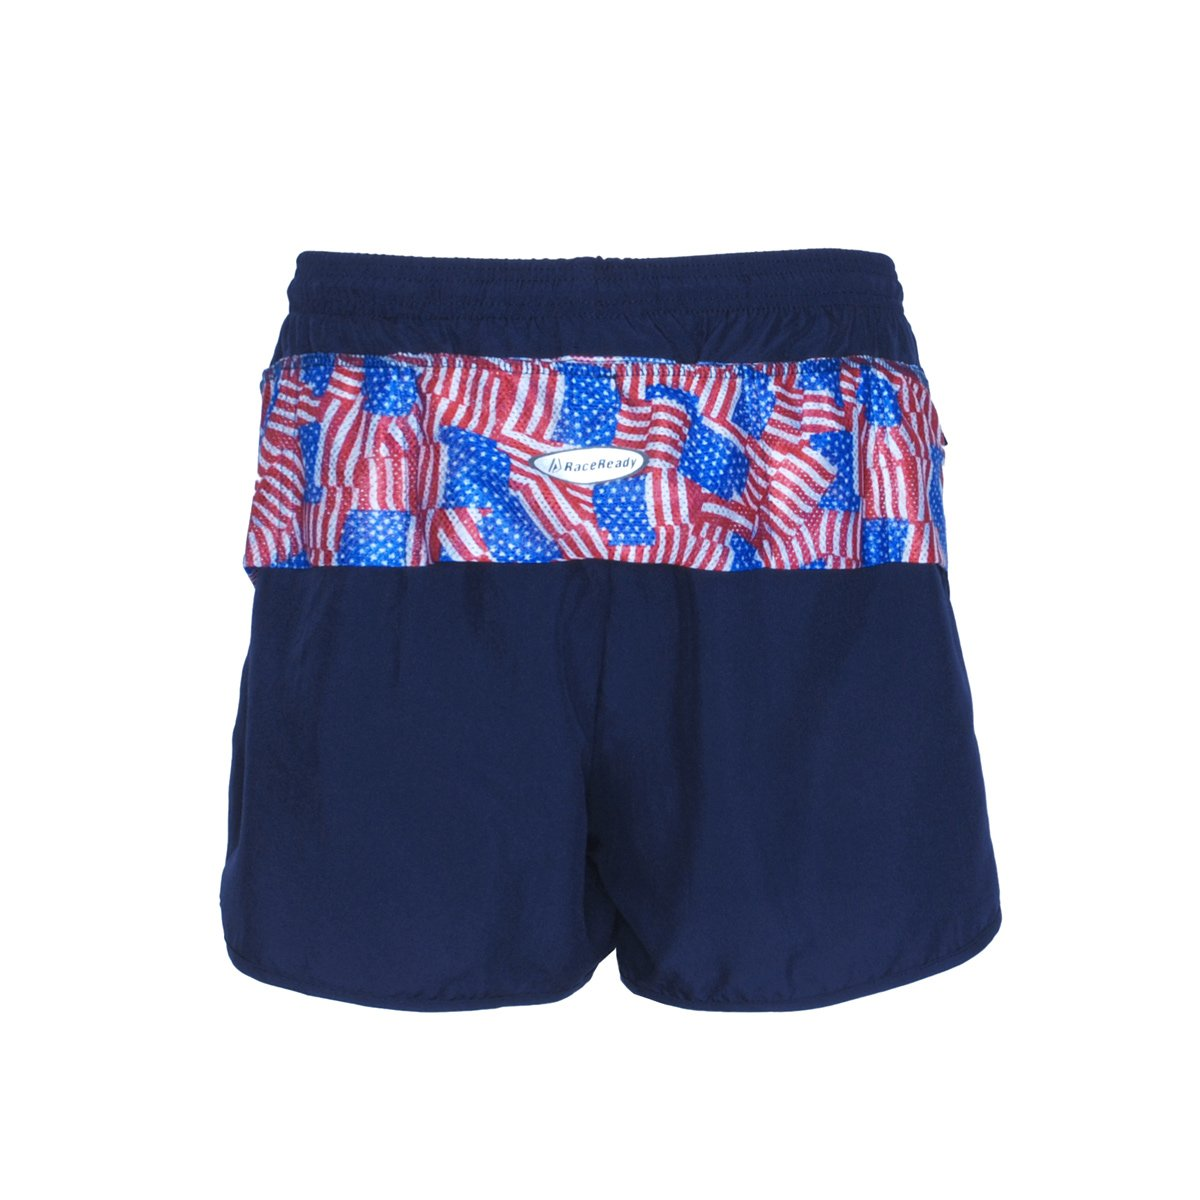 Men's LD V-Notch Short - Navy w/Flag